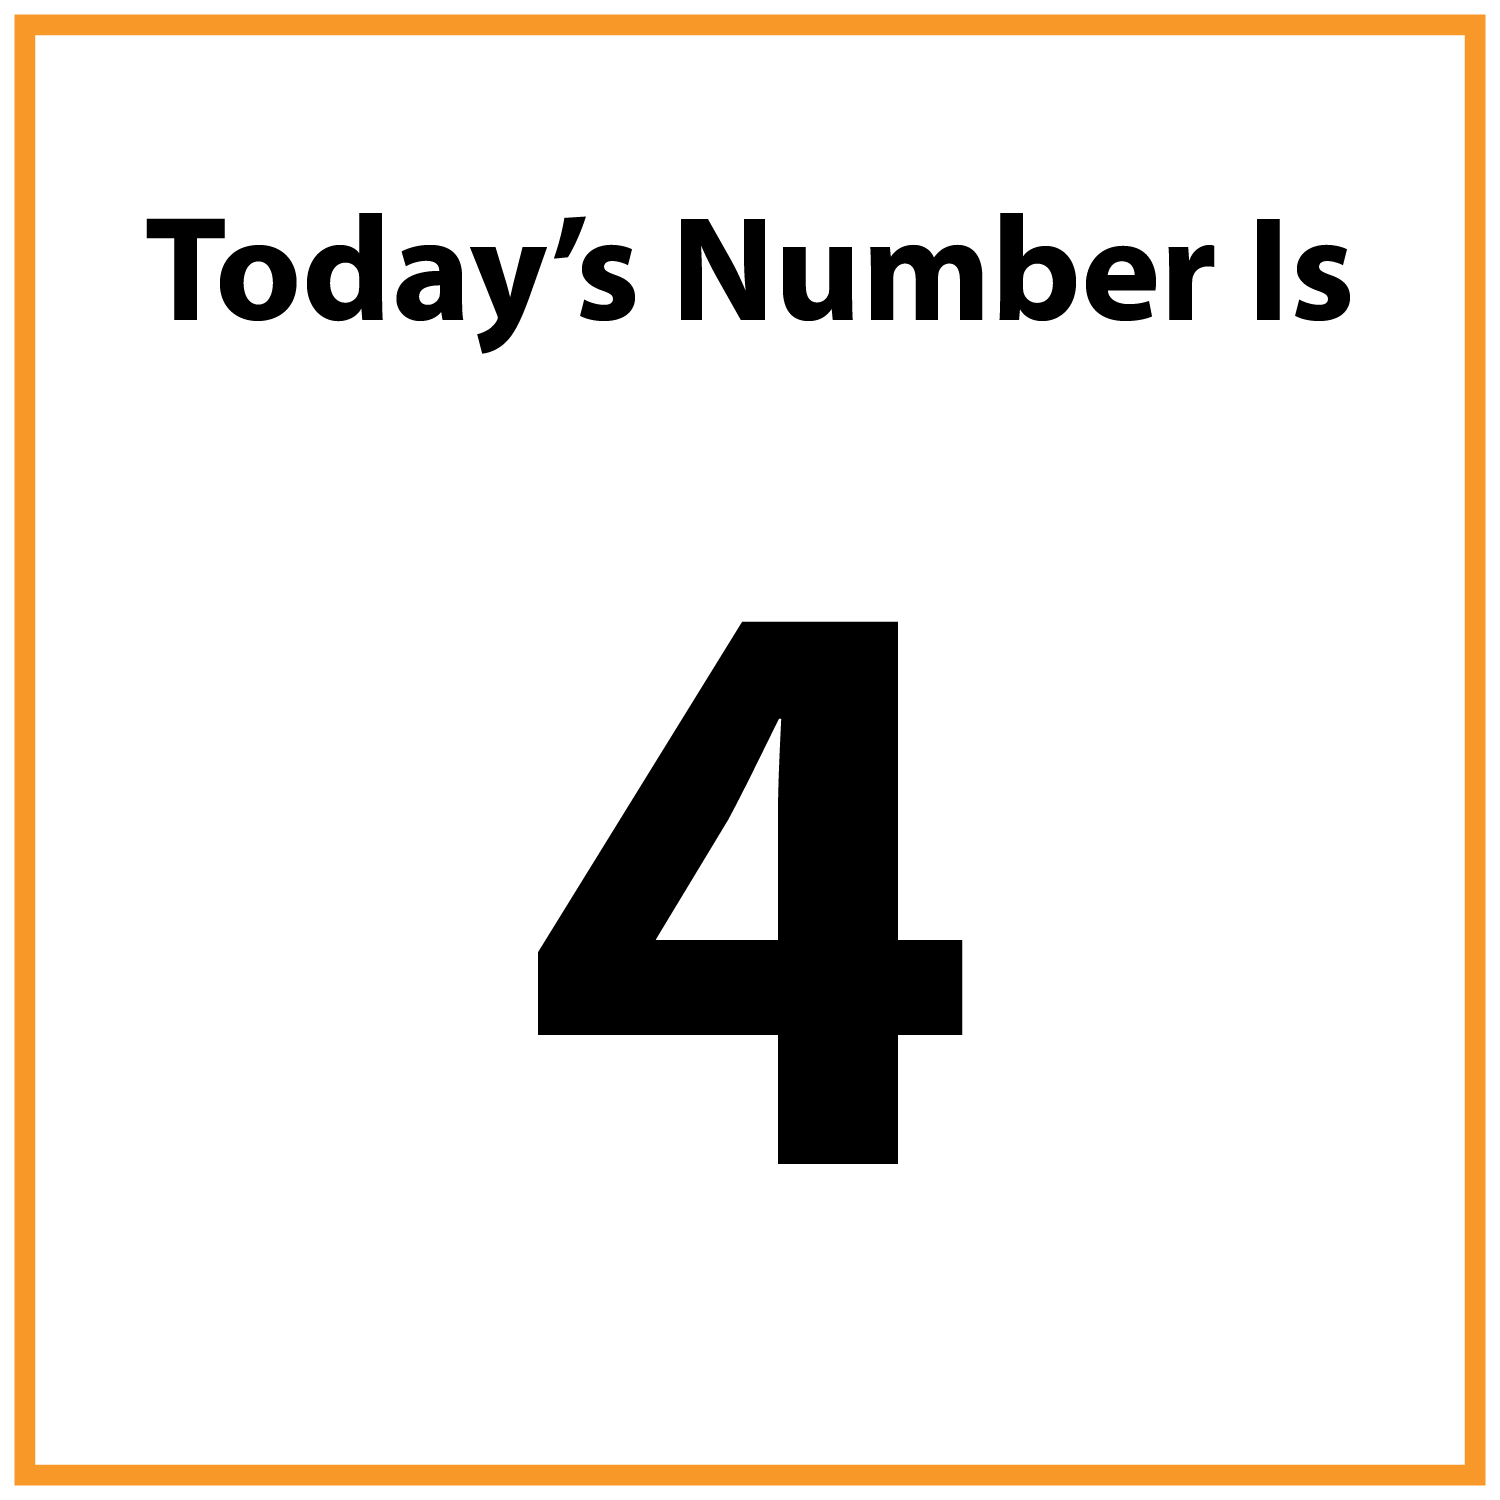 Today's number is 4.